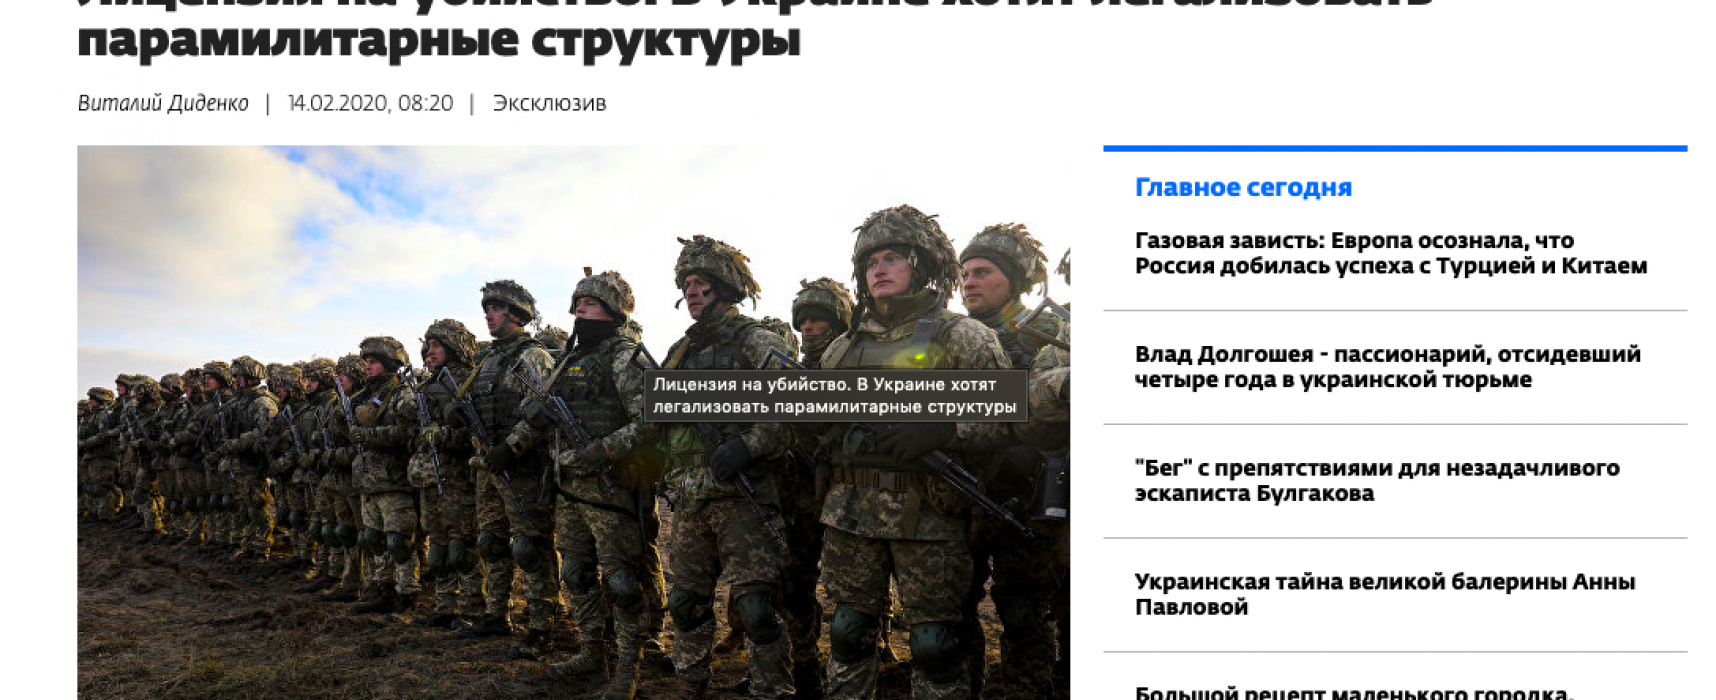 Fake: Ukraine Legalizes Violence. Private Armies to Fight in Donbas